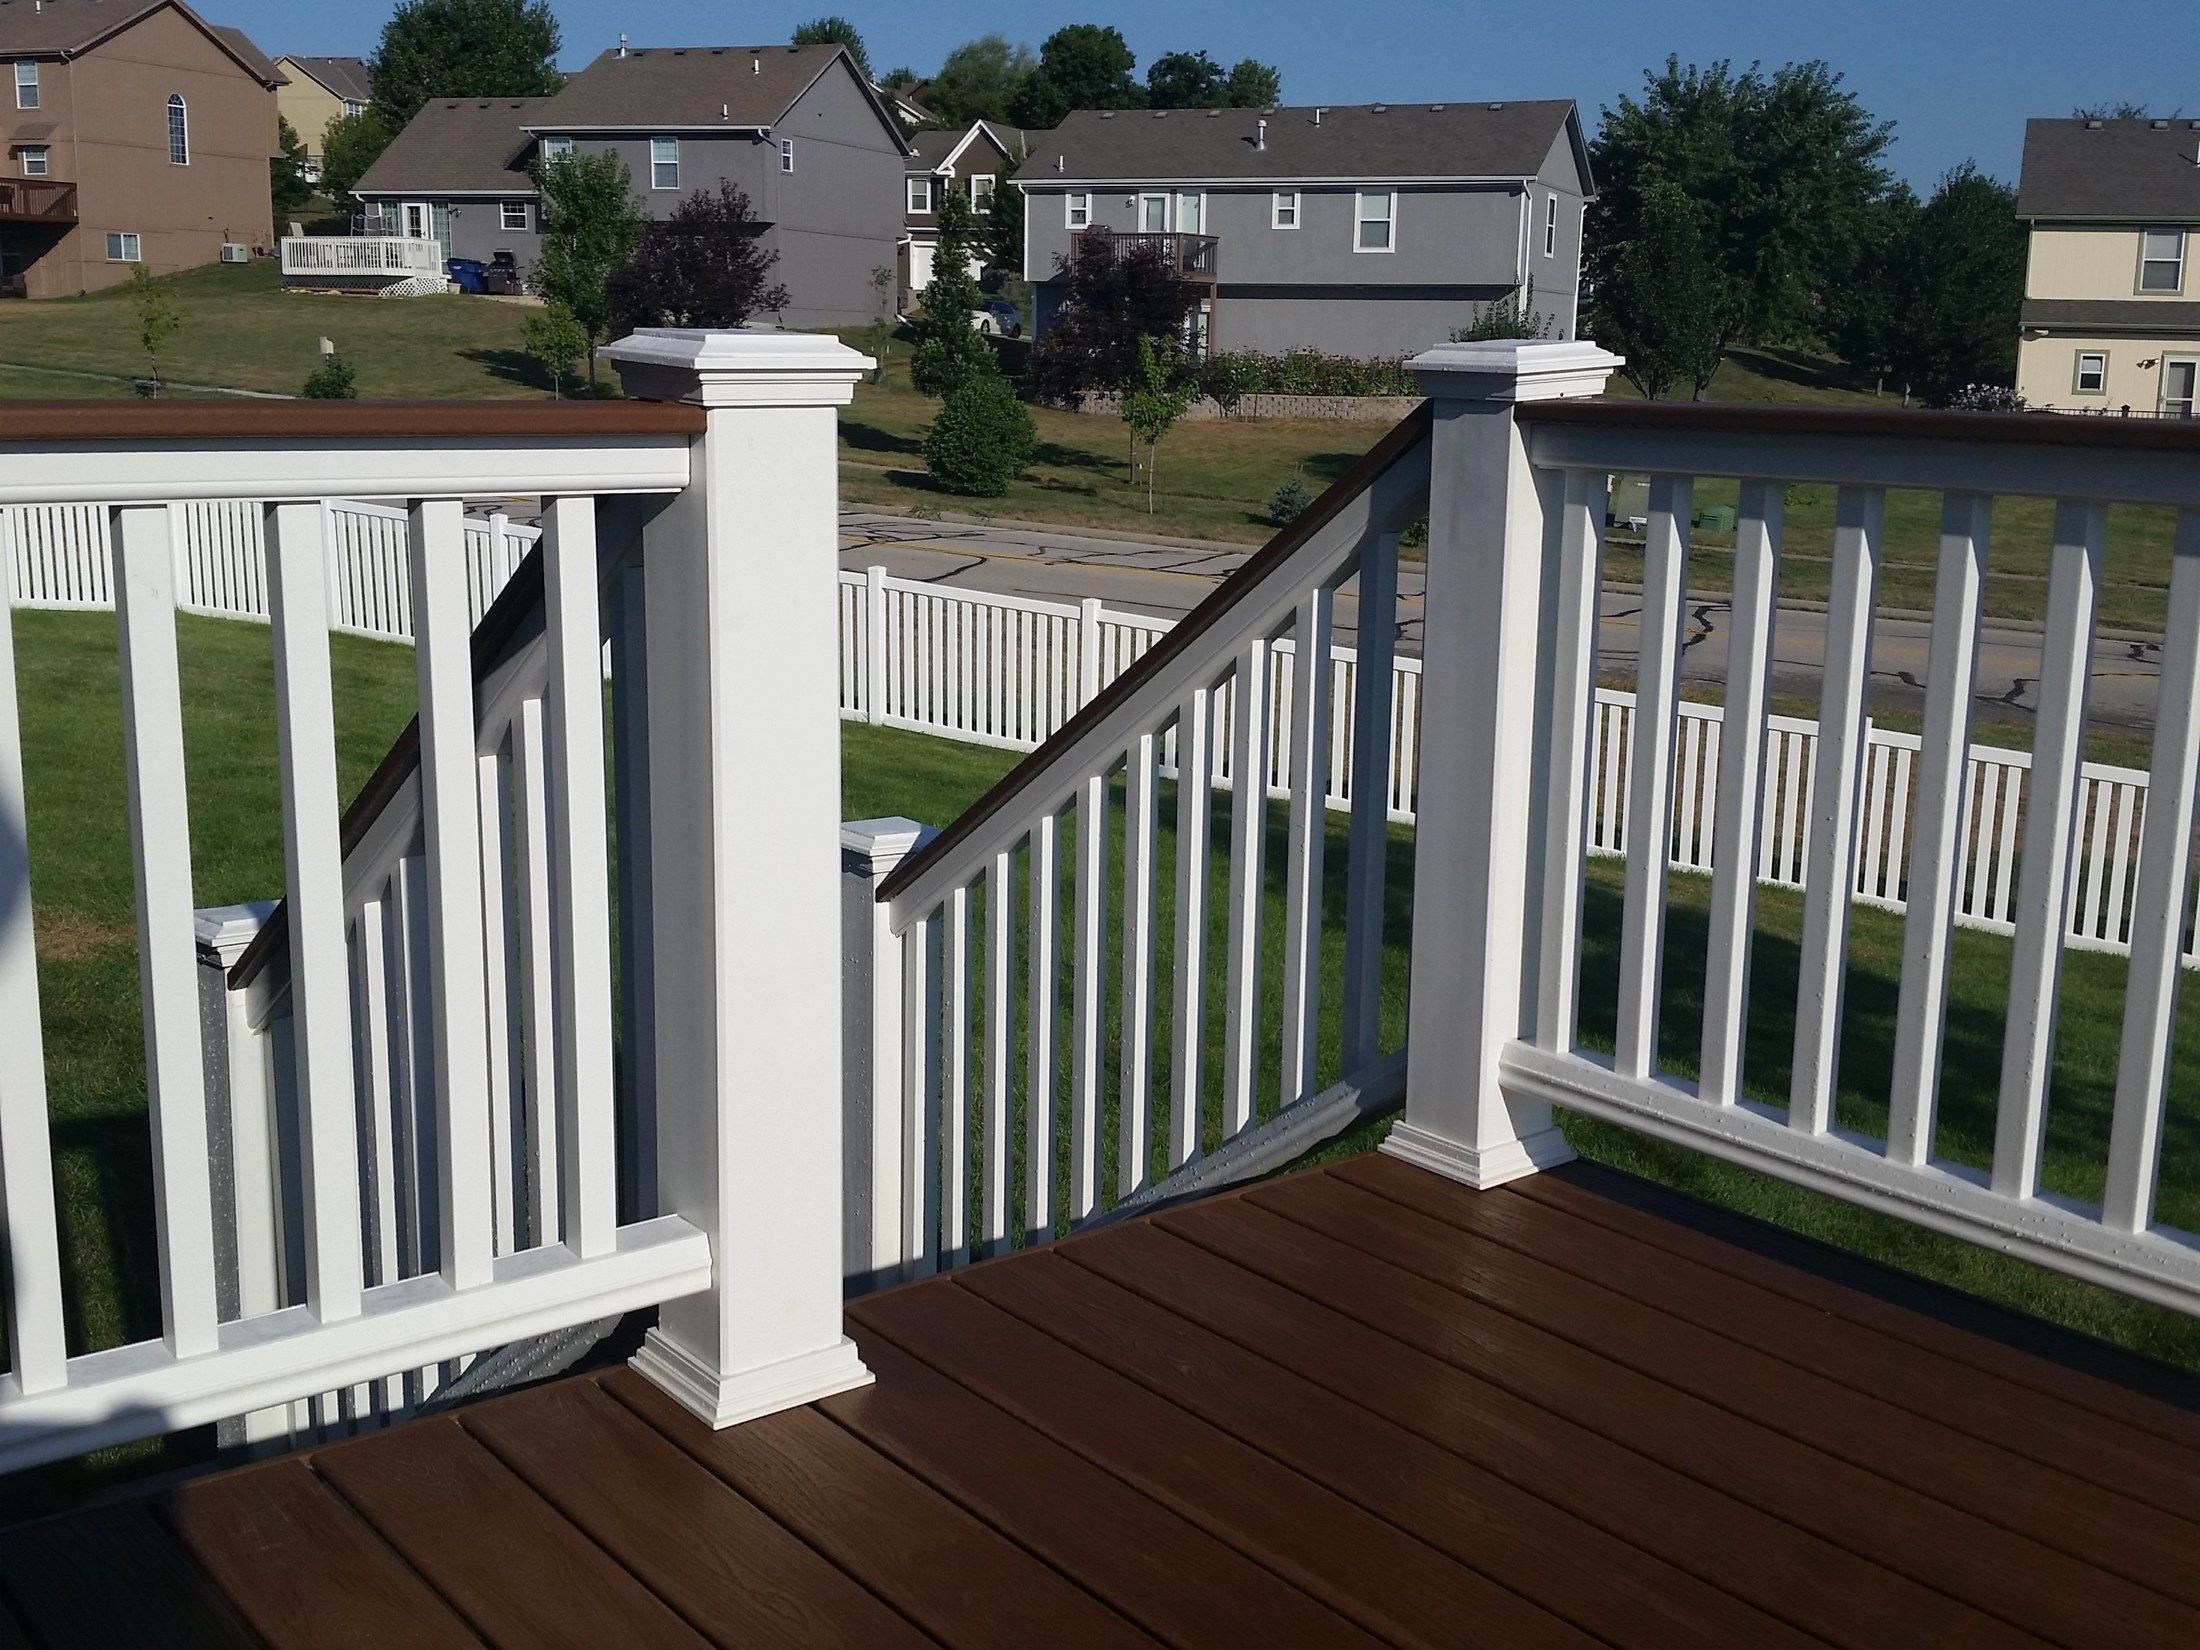 Composite deck and railing picture 6657 for Composite deck railing